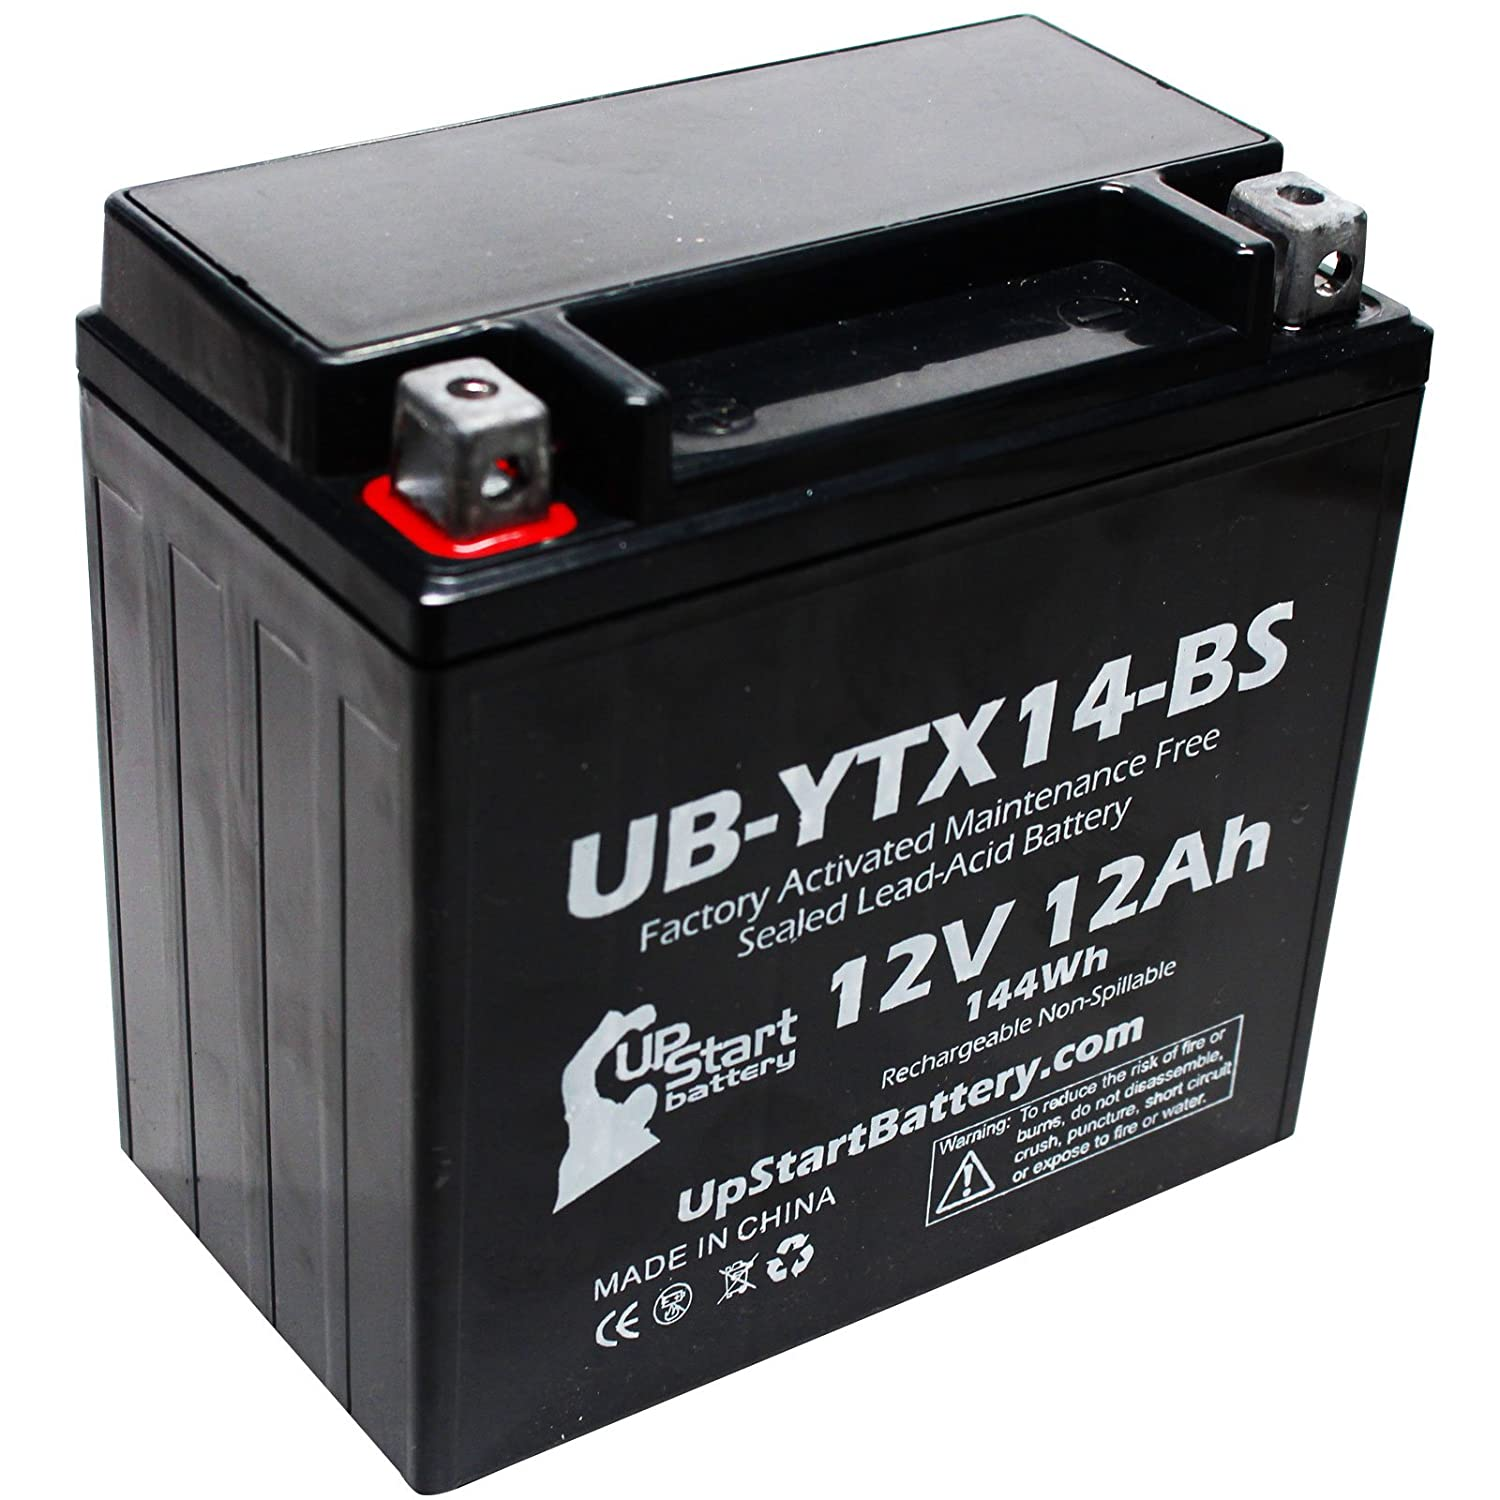 Replacement 1991 Honda TRX300,FW FourTrax 300, 4x4 300 CC Factory Activated, Maintenance Free, ATV Battery - 12V, 12AH, UB-YTX14-BS Upstart Battery UB-YTX14-BS-DL17